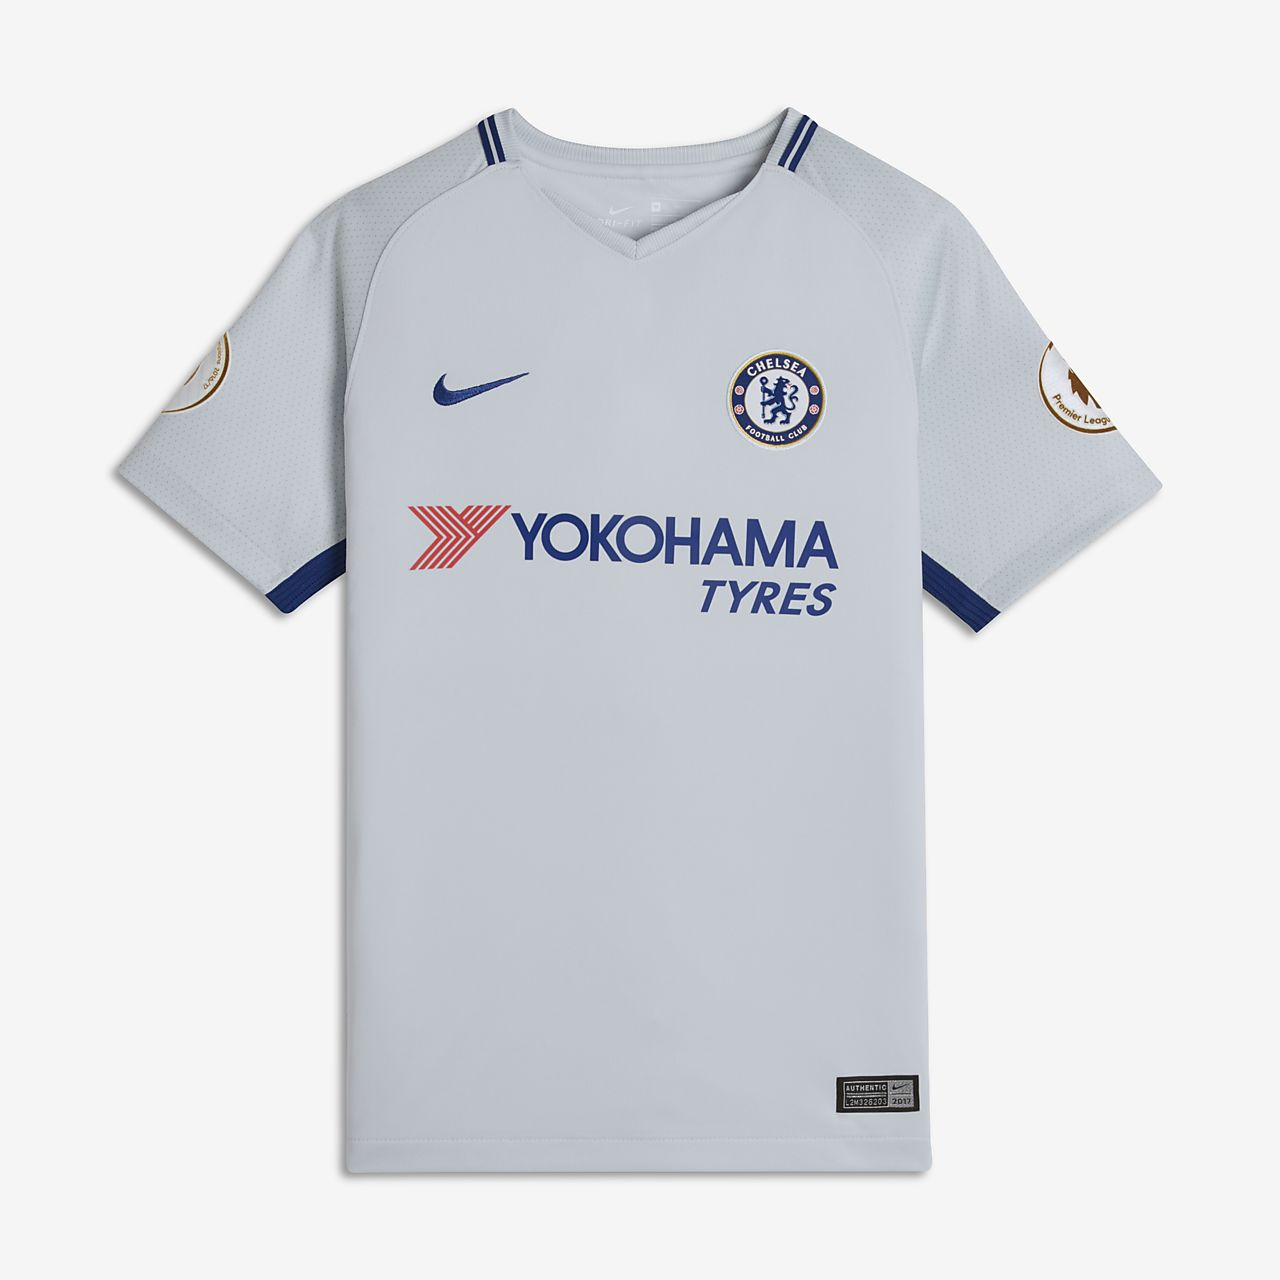 73bc62fa59b Older Kids' Football Shirt. 2017/18 Chelsea FC Stadium Away (Alvaro Morata)